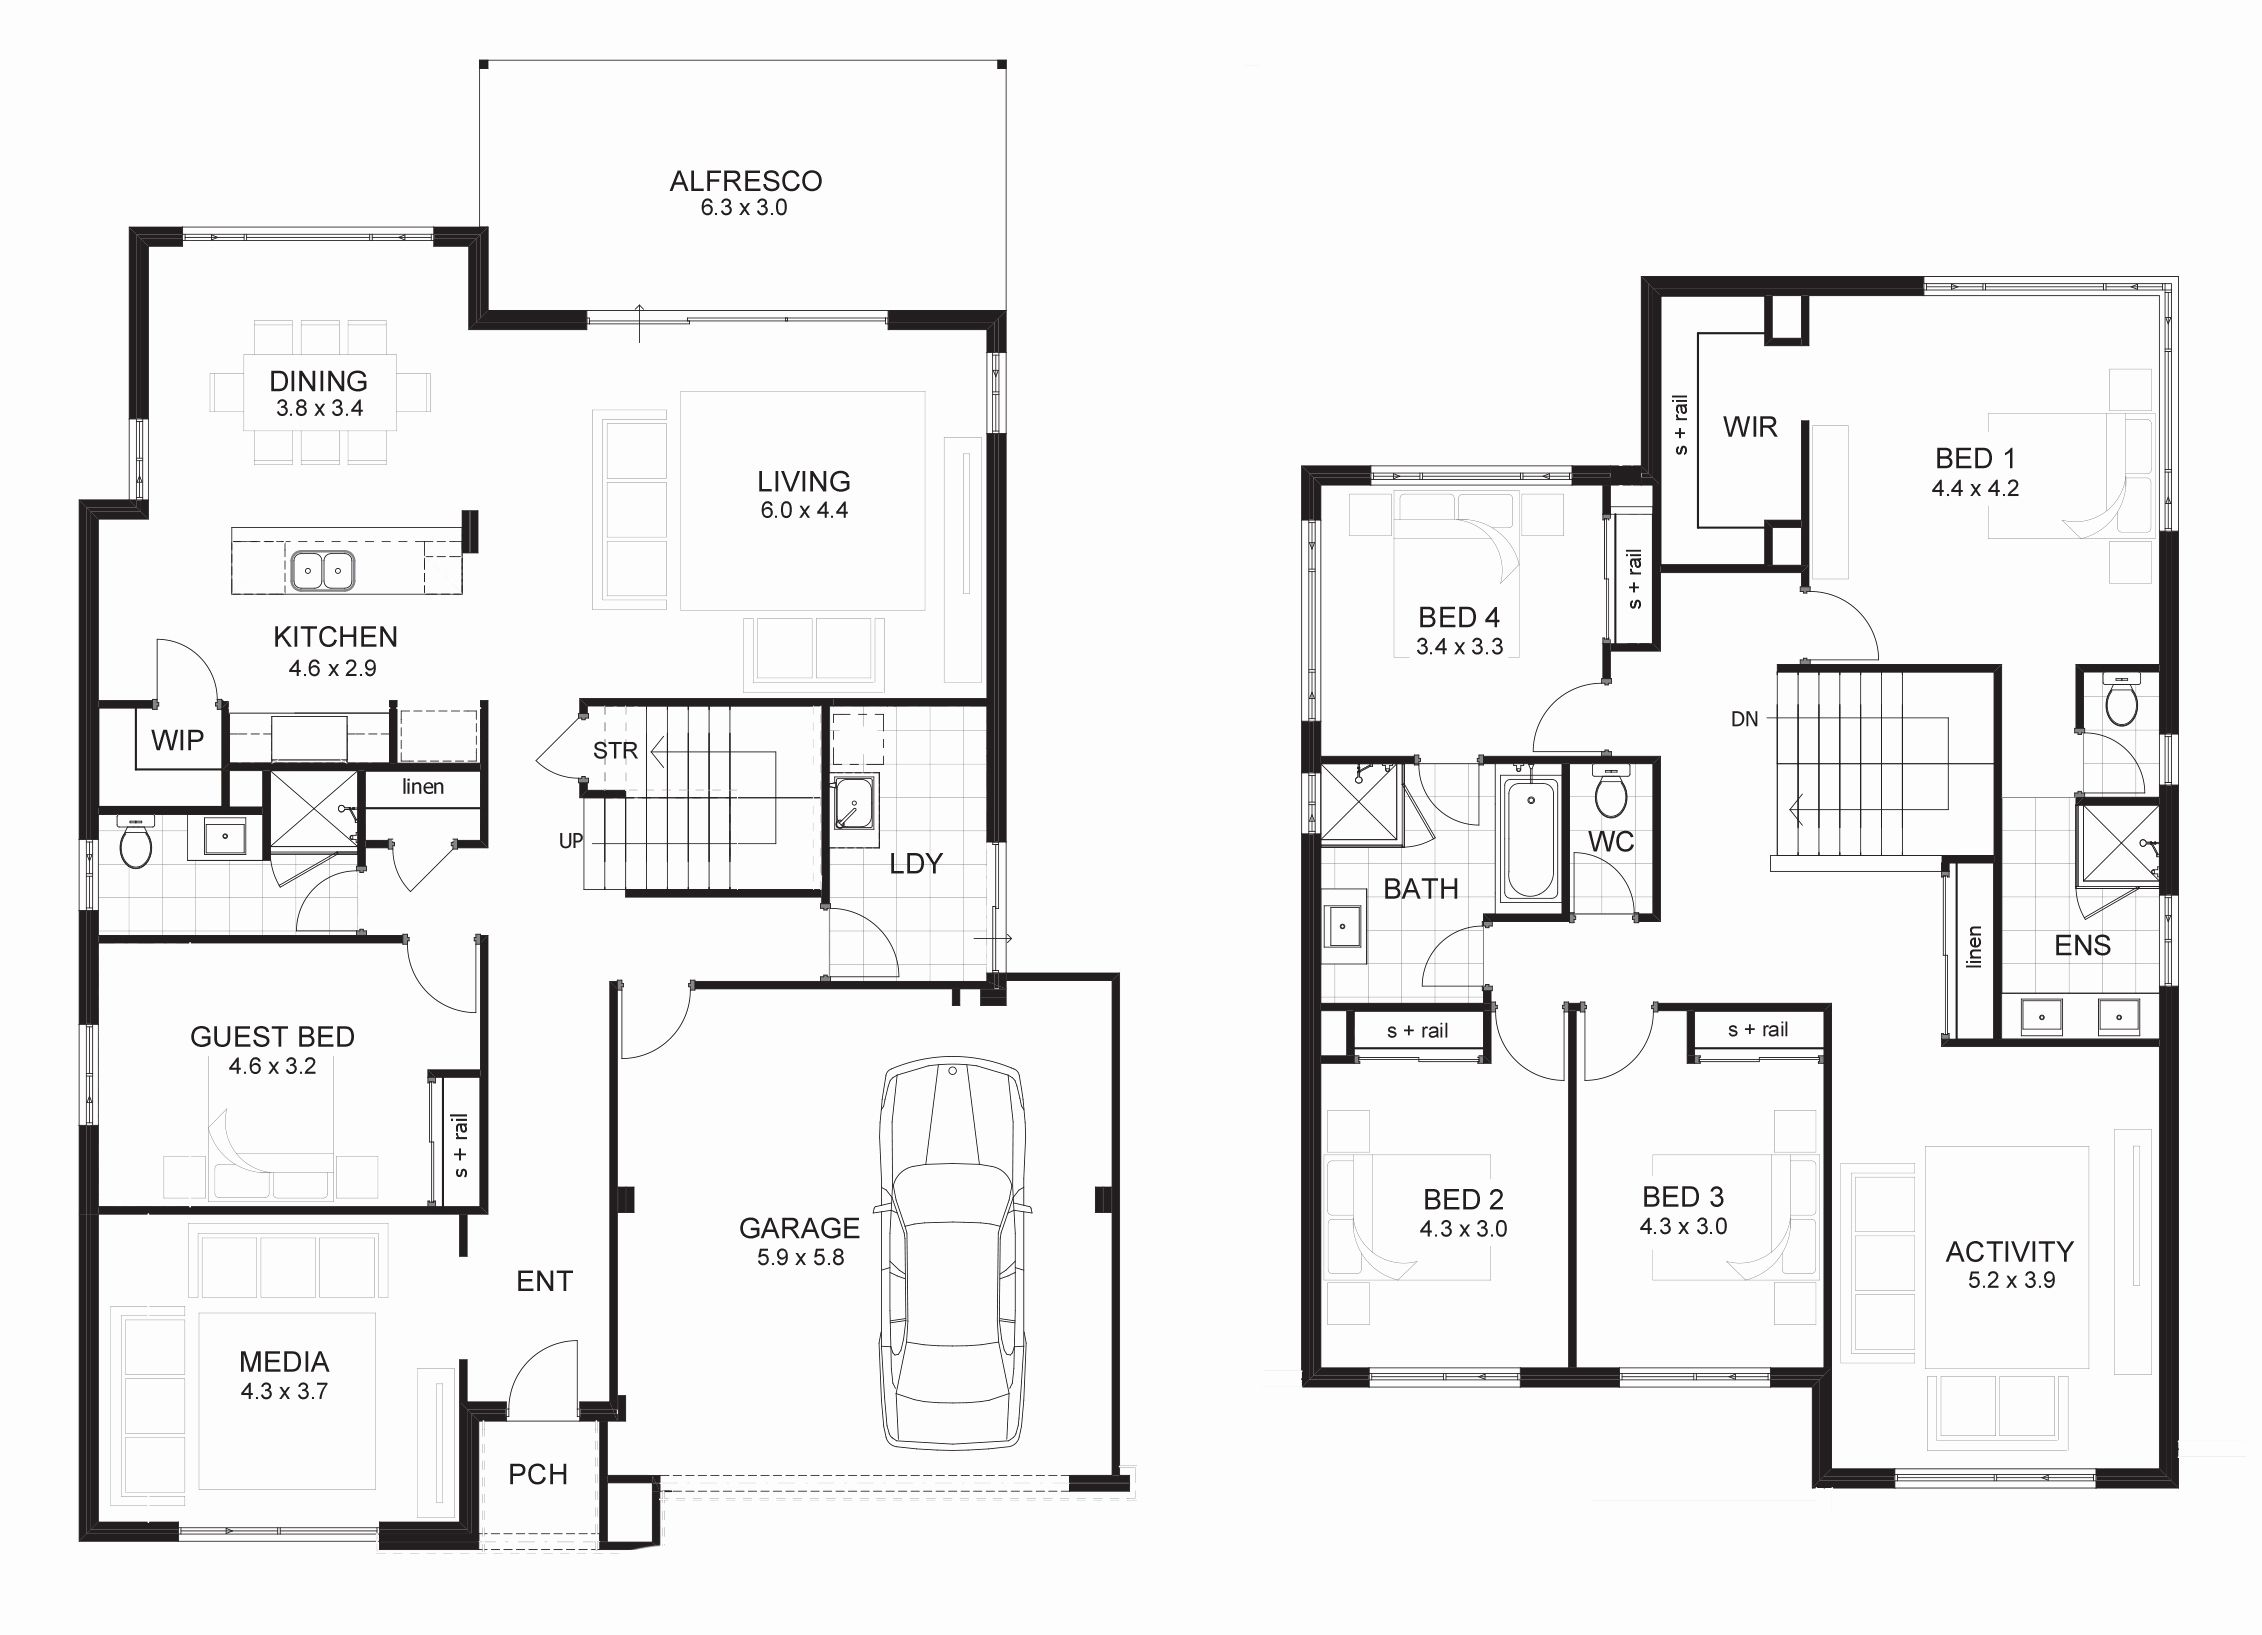 2 Storey House Floor Plan Dwg Inspirational Residential Building Plans Dwg Storey House Flo House Plans Australia House Plans With Photos 6 Bedroom House Plans